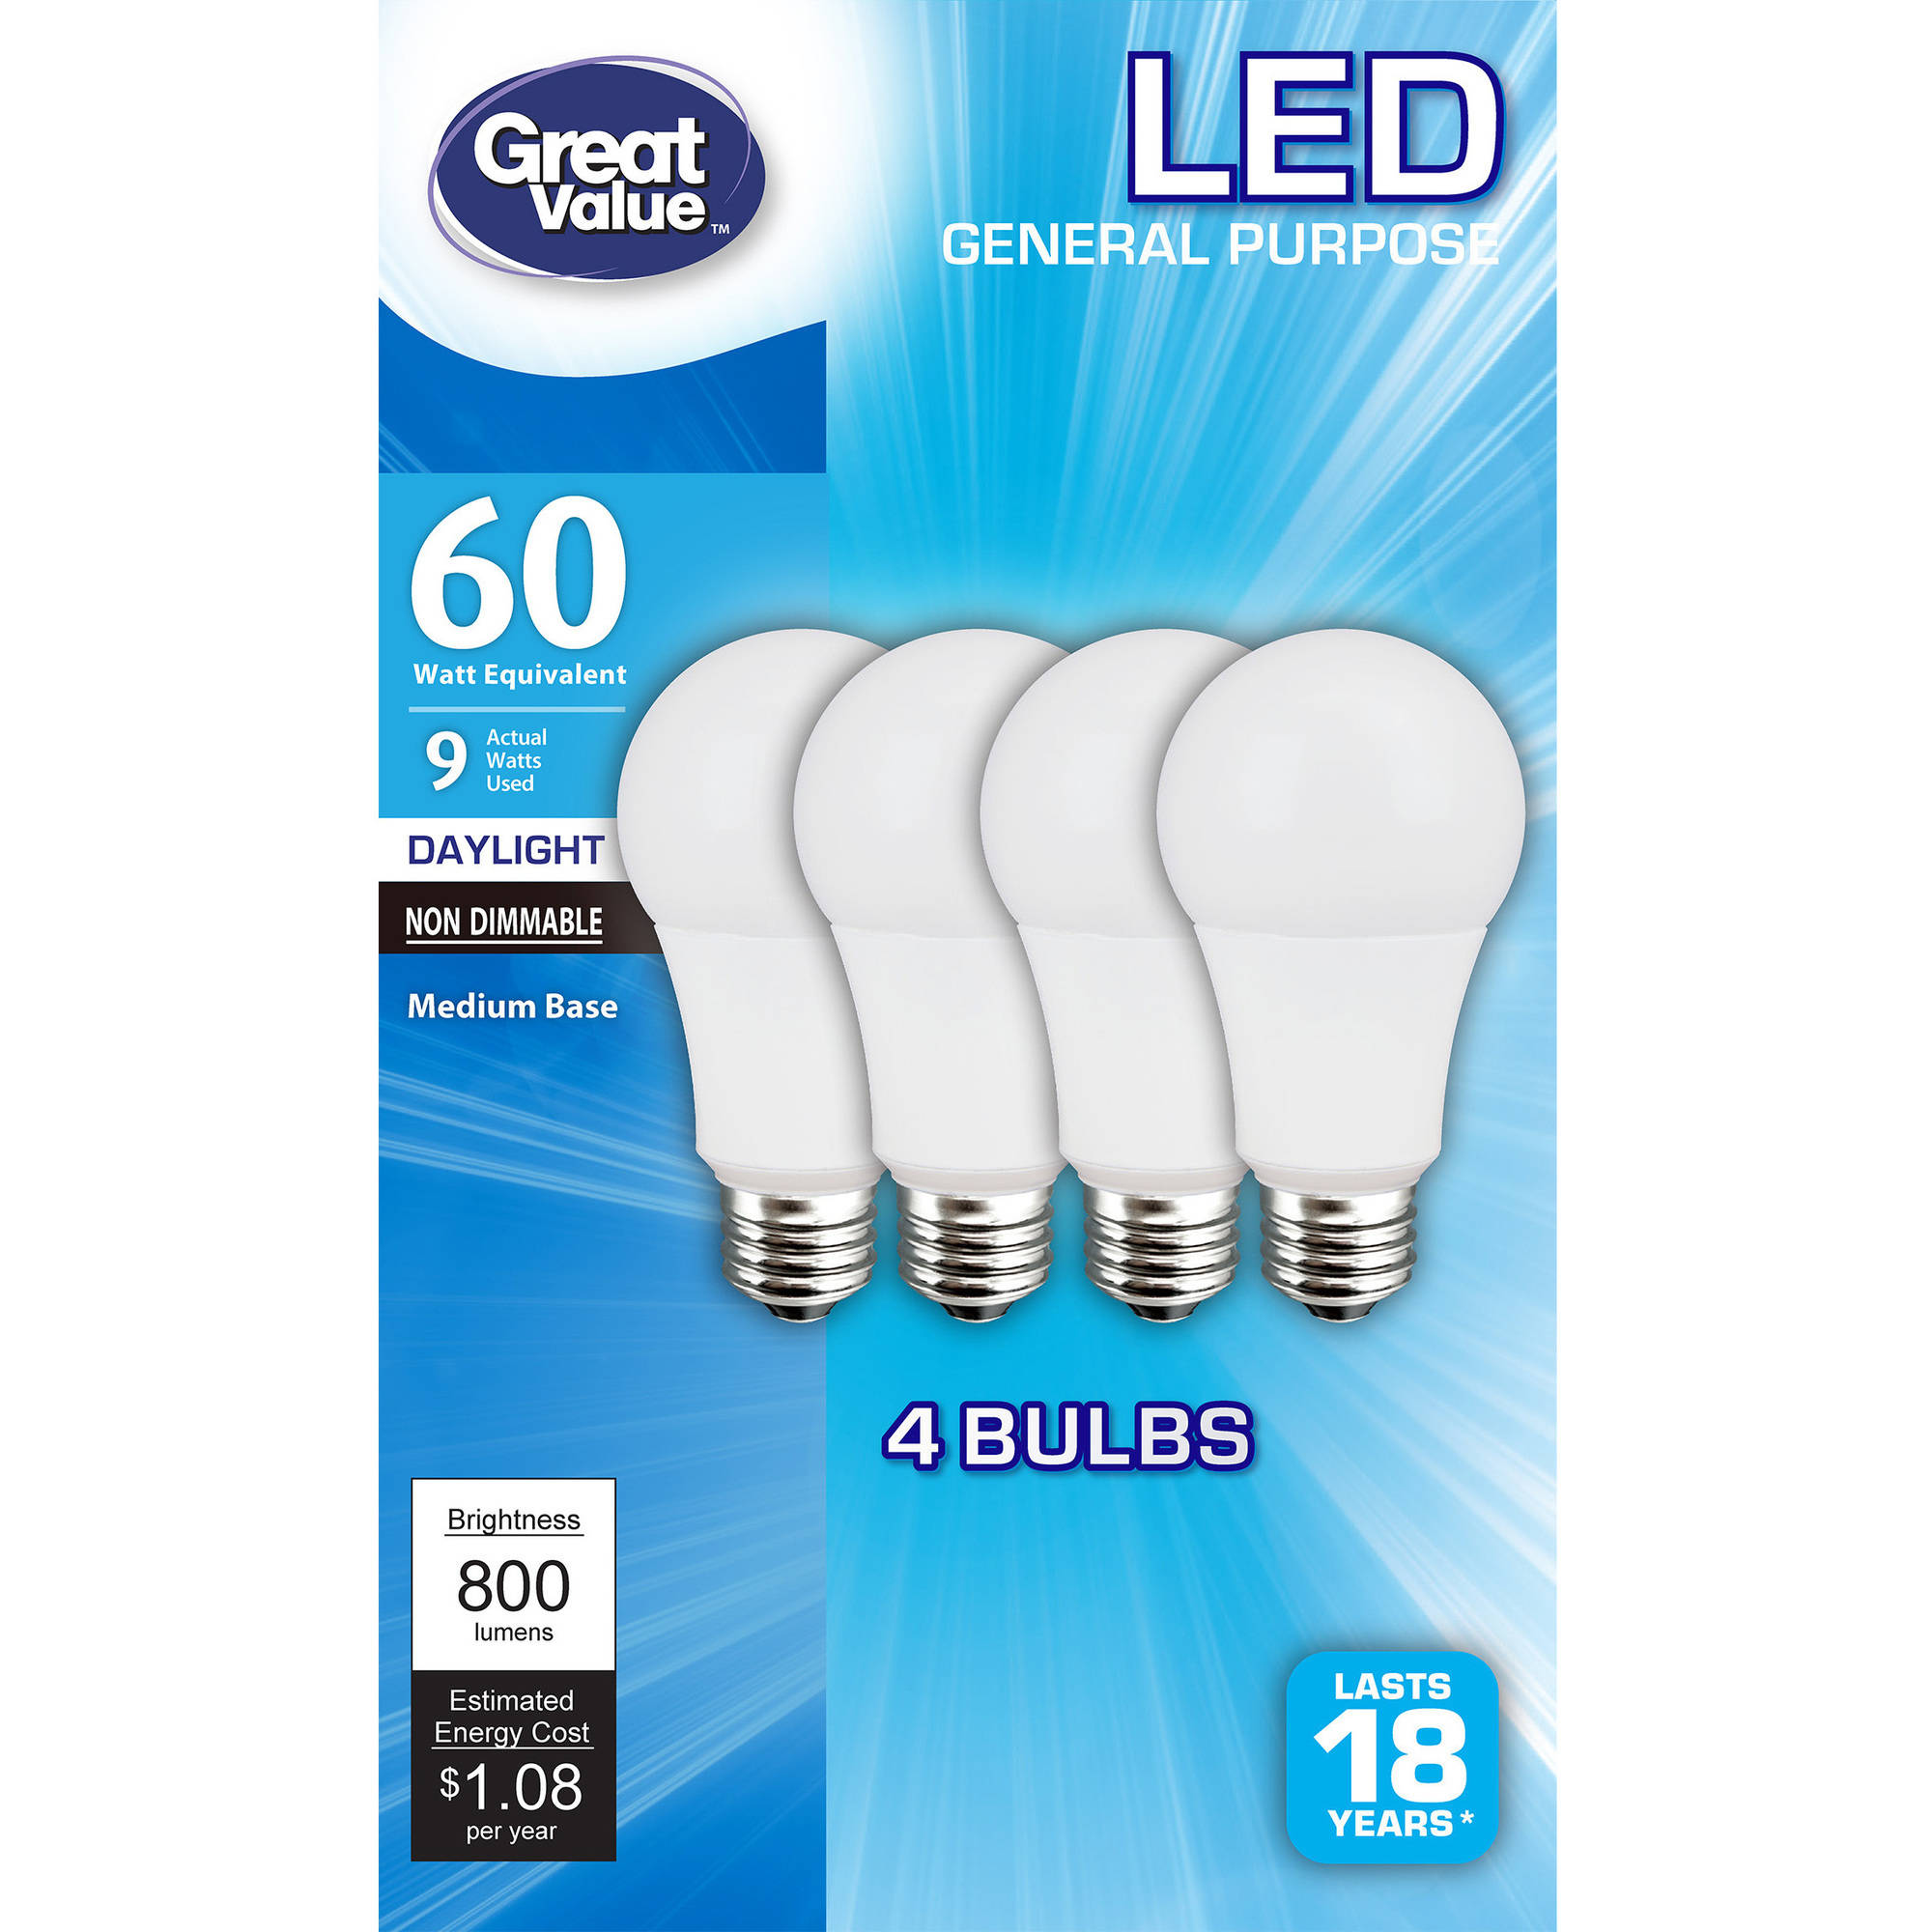 lamps already you or simply garage to save tube department fluorescent in curly kitchen long are money versions compact hires cfls light may swirly a energy have the of lighting energysaver choices lights bulb